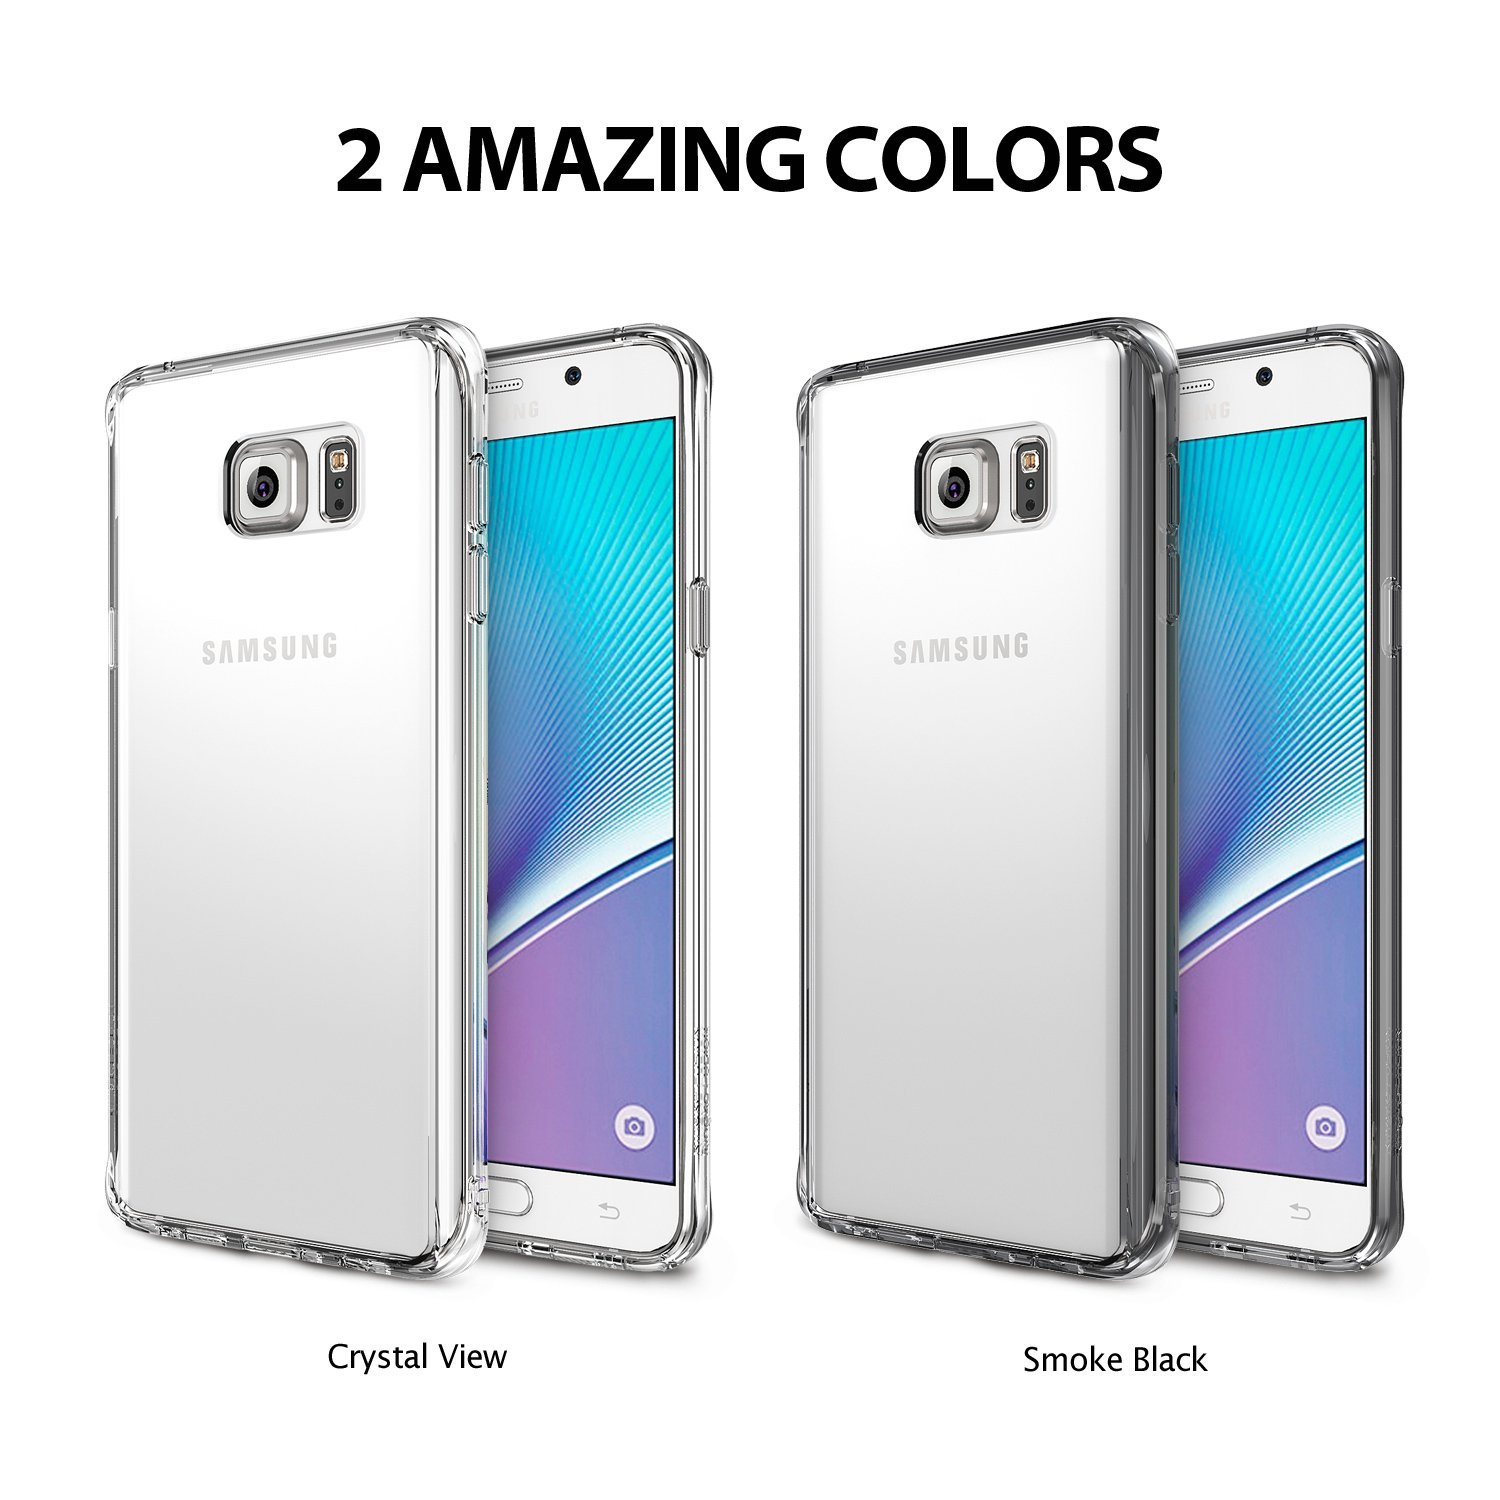 on sale 7f172 bba36 US $11.99 |100% Original Ringke Fusion / Slim Case for Samsung Galaxy Note  5 Full Protection Back Cover Phone Cases for Galaxy Note 5-in Fitted Cases  ...